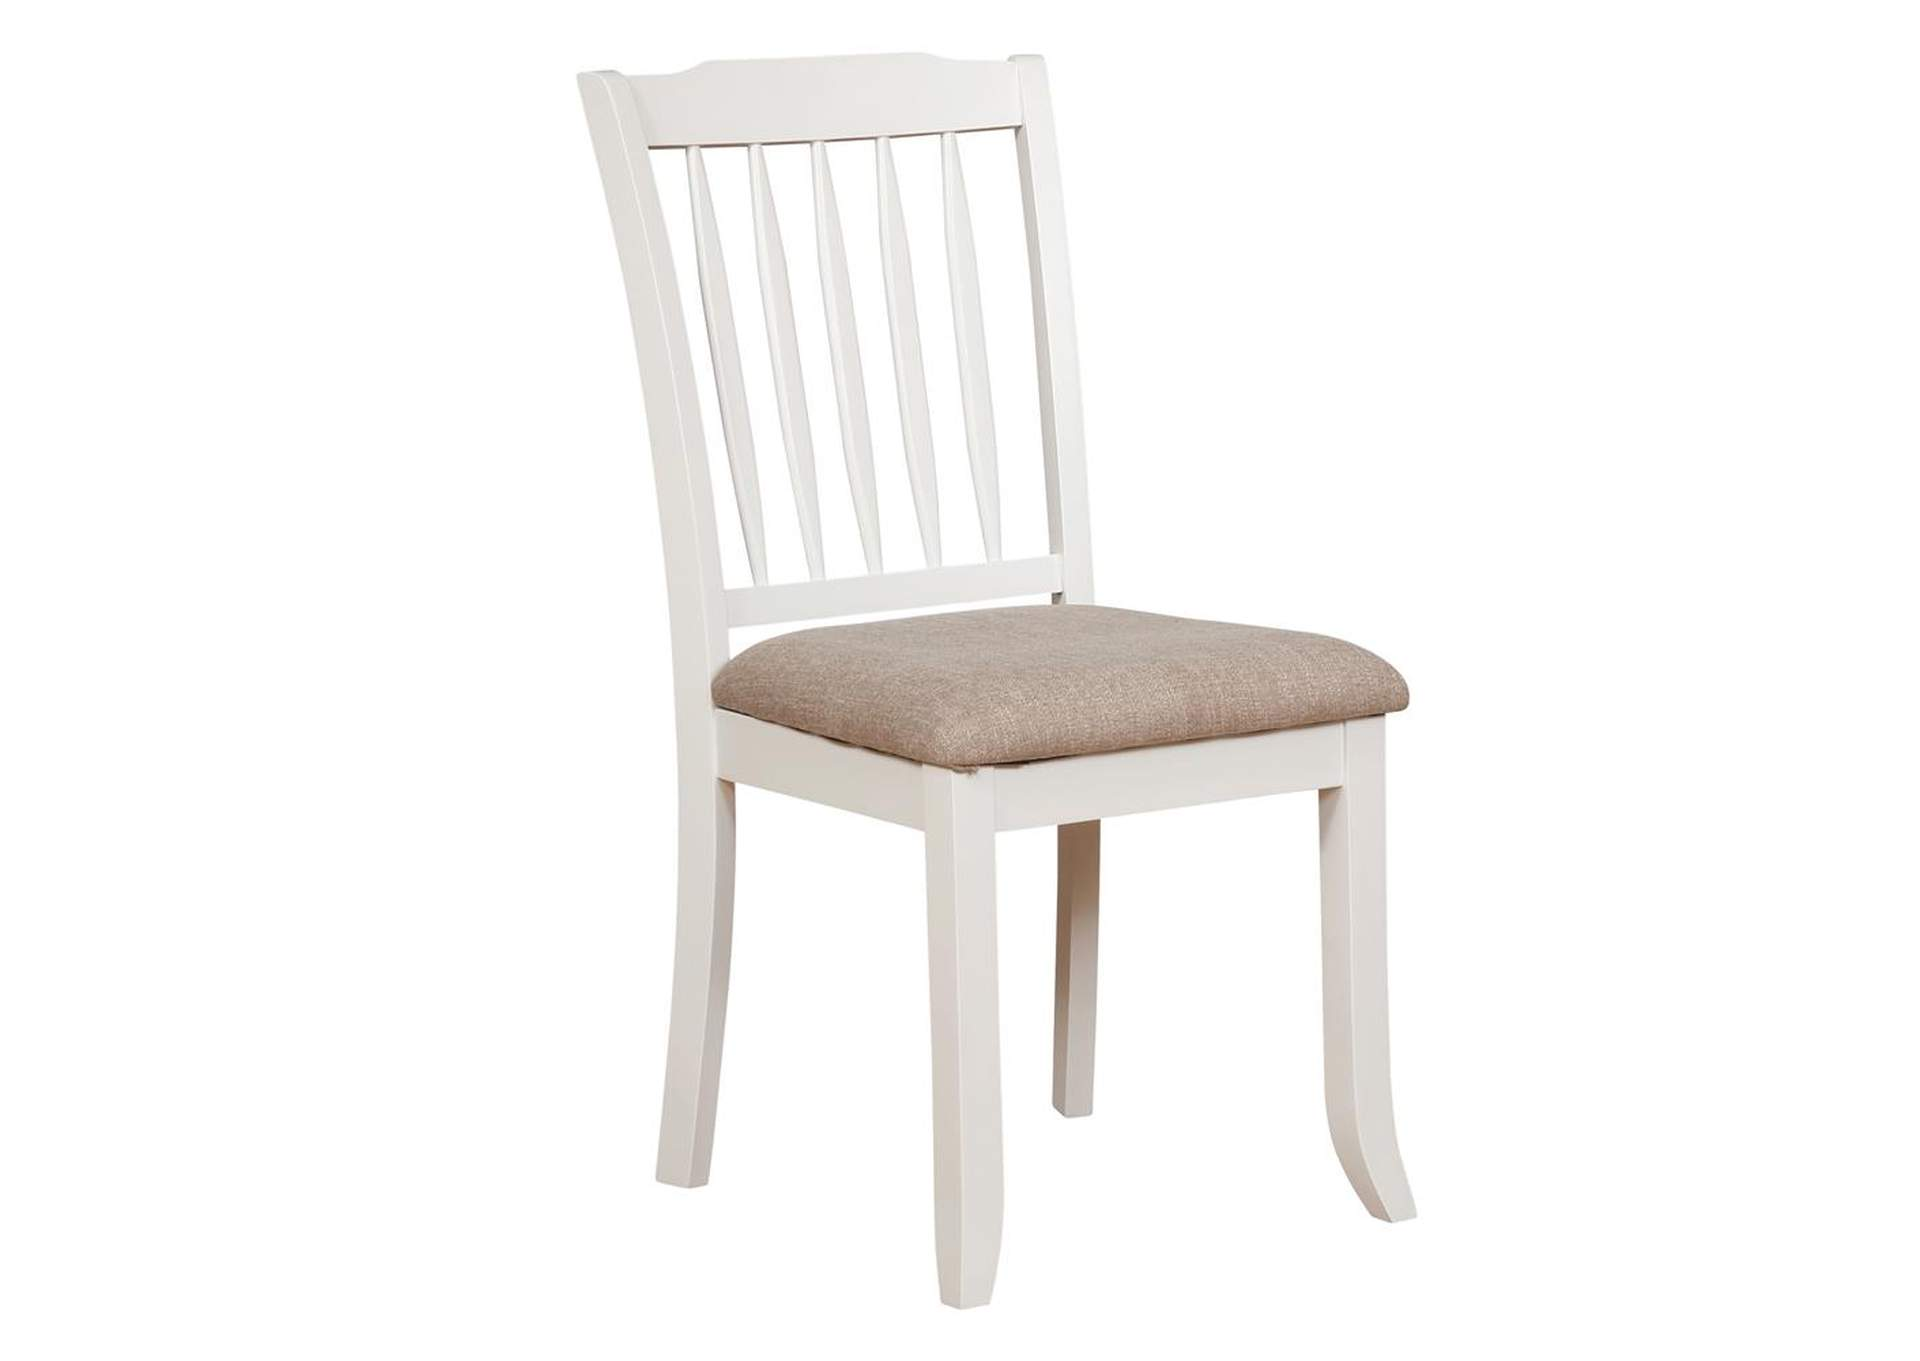 Hesperia Slat Back Dining Chairs White And Light Brown (Set of 2),Coaster Furniture